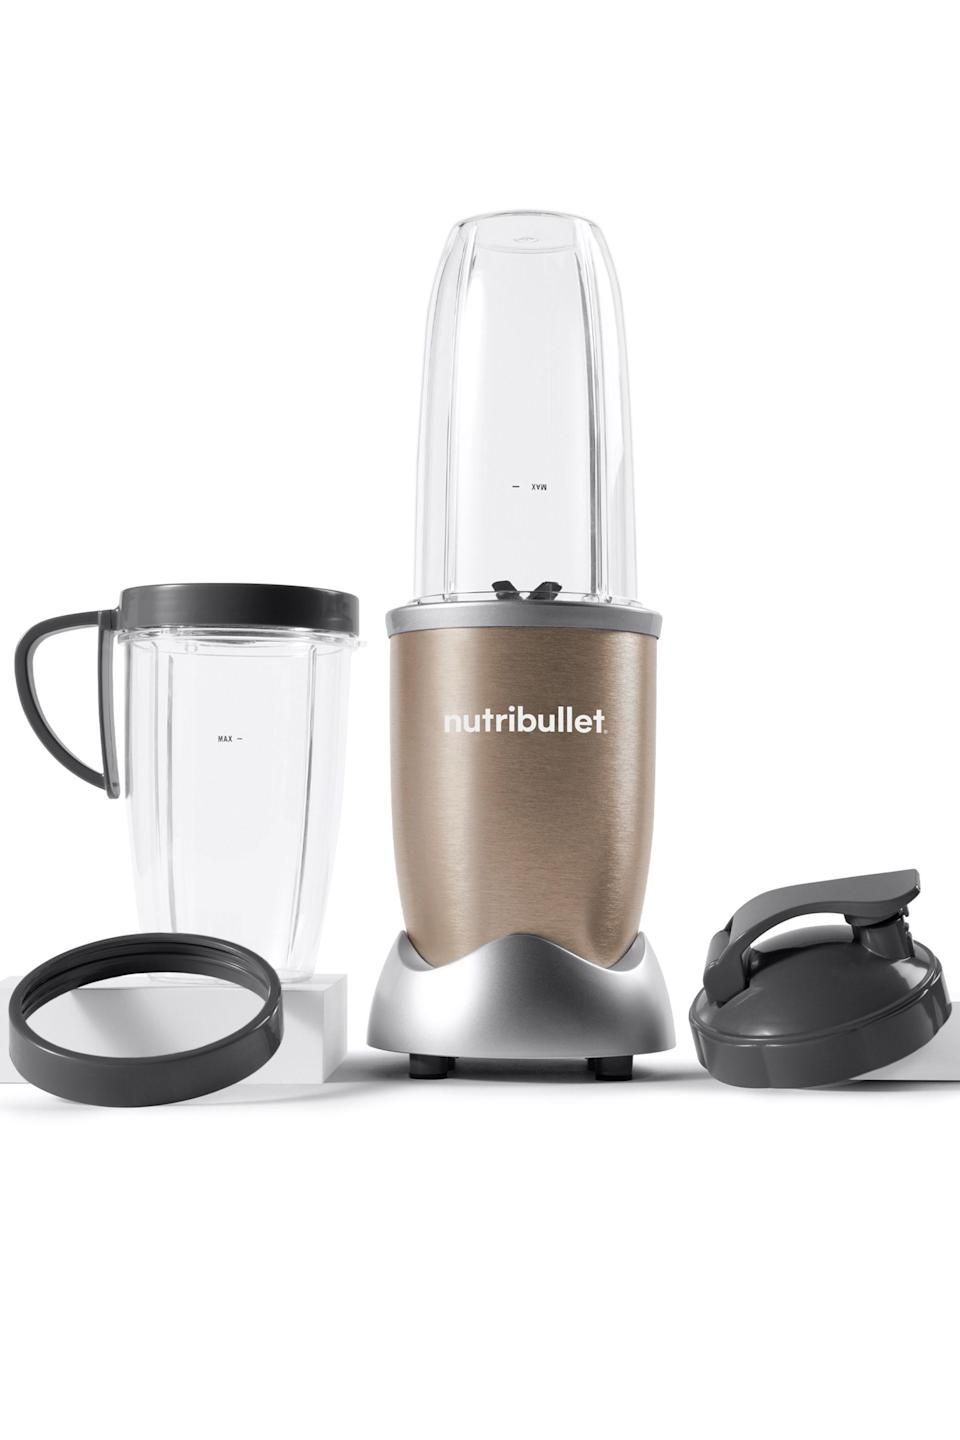 """<p><strong>NutriBullet</strong></p><p>walmart.com</p><p><strong>$79.00</strong></p><p><a href=""""https://go.redirectingat.com?id=74968X1596630&url=https%3A%2F%2Fwww.walmart.com%2Fip%2F46275746&sref=https%3A%2F%2Fwww.elle.com%2Ffashion%2Fg28509176%2Fcozy-gift-guide%2F"""" rel=""""nofollow noopener"""" target=""""_blank"""" data-ylk=""""slk:Shop Now"""" class=""""link rapid-noclick-resp"""">Shop Now</a></p><p>""""I don't like to eat breakfast; I like to drink it. Every morning, on my way to work, I'd spend $9.20 on my favorite cold brew smoothie from a spot near my office. Of course, I haven't been able to frequent said shop, but found the next best thing—and for a fraction of the cost. My Nutribullet has gotten plenty of use over the past eight-plus weeks, and makes morning smoothie time quick, fast, and easy. I'm in control of what goes into my brew, and spend that same $9.20 on ingredients that'll yield a week's worth of a.m. delights.""""– Angel Lenise Pyles, Supervising Video Producer </p>"""